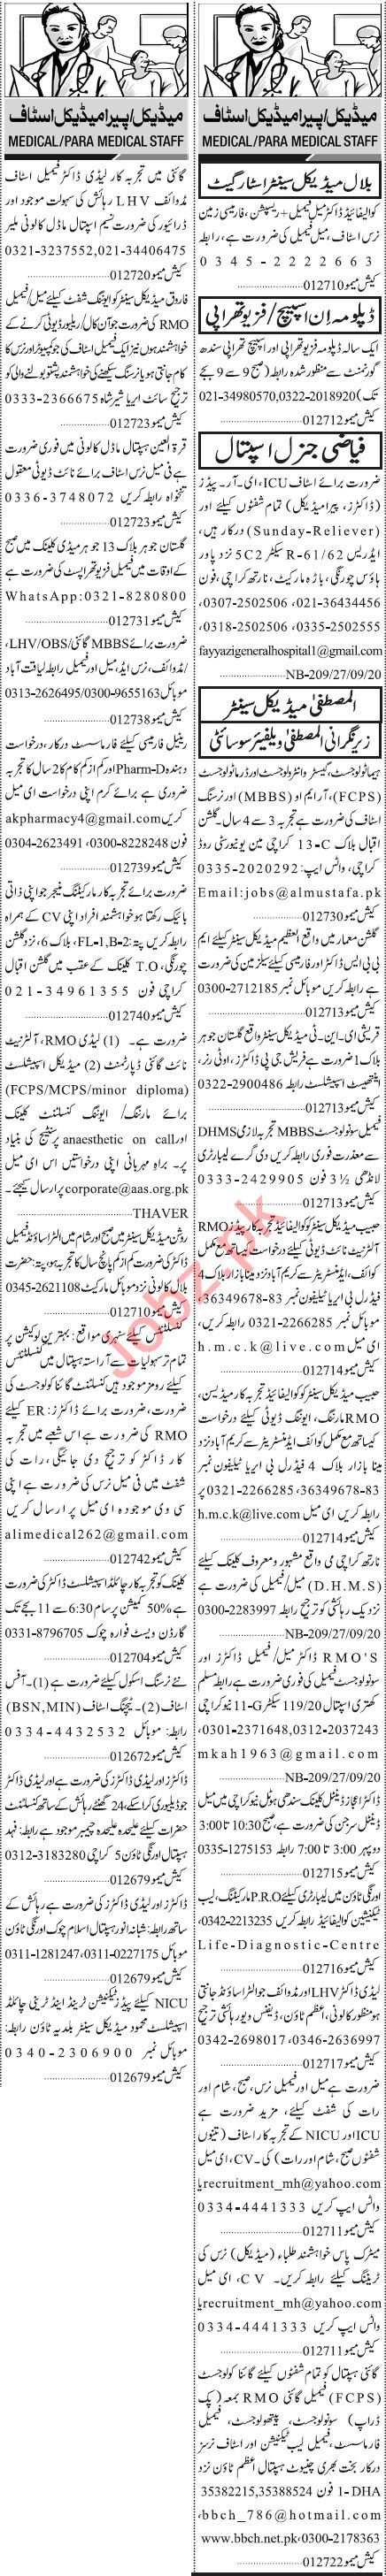 Jang Sunday Classified Ads 27 Sept 2020 for Medical Staff